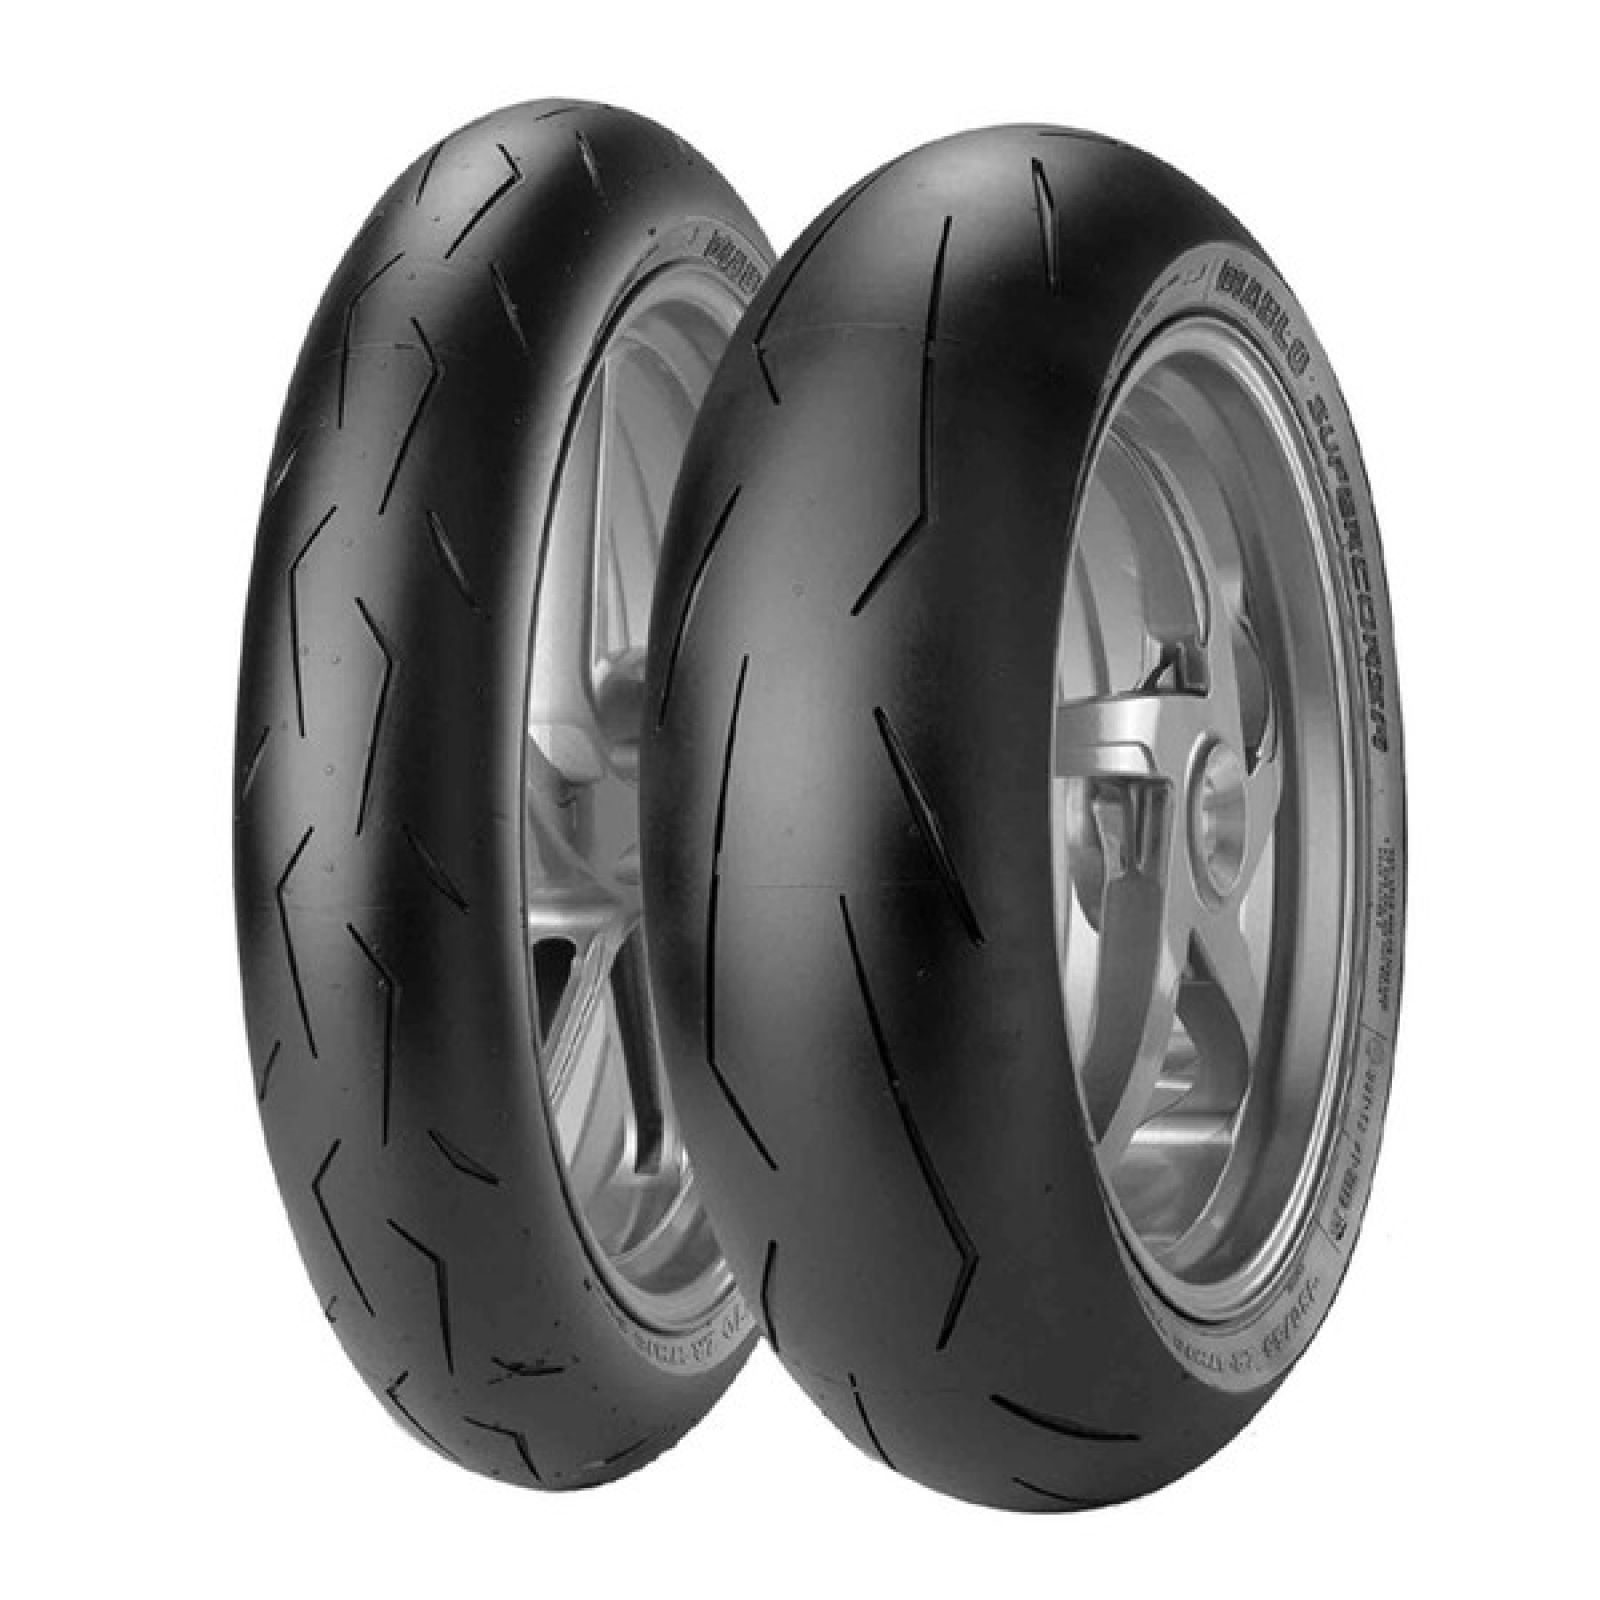 PIRELLI DIABLO SUPERCORSA V1 SC2 le train en 120/180